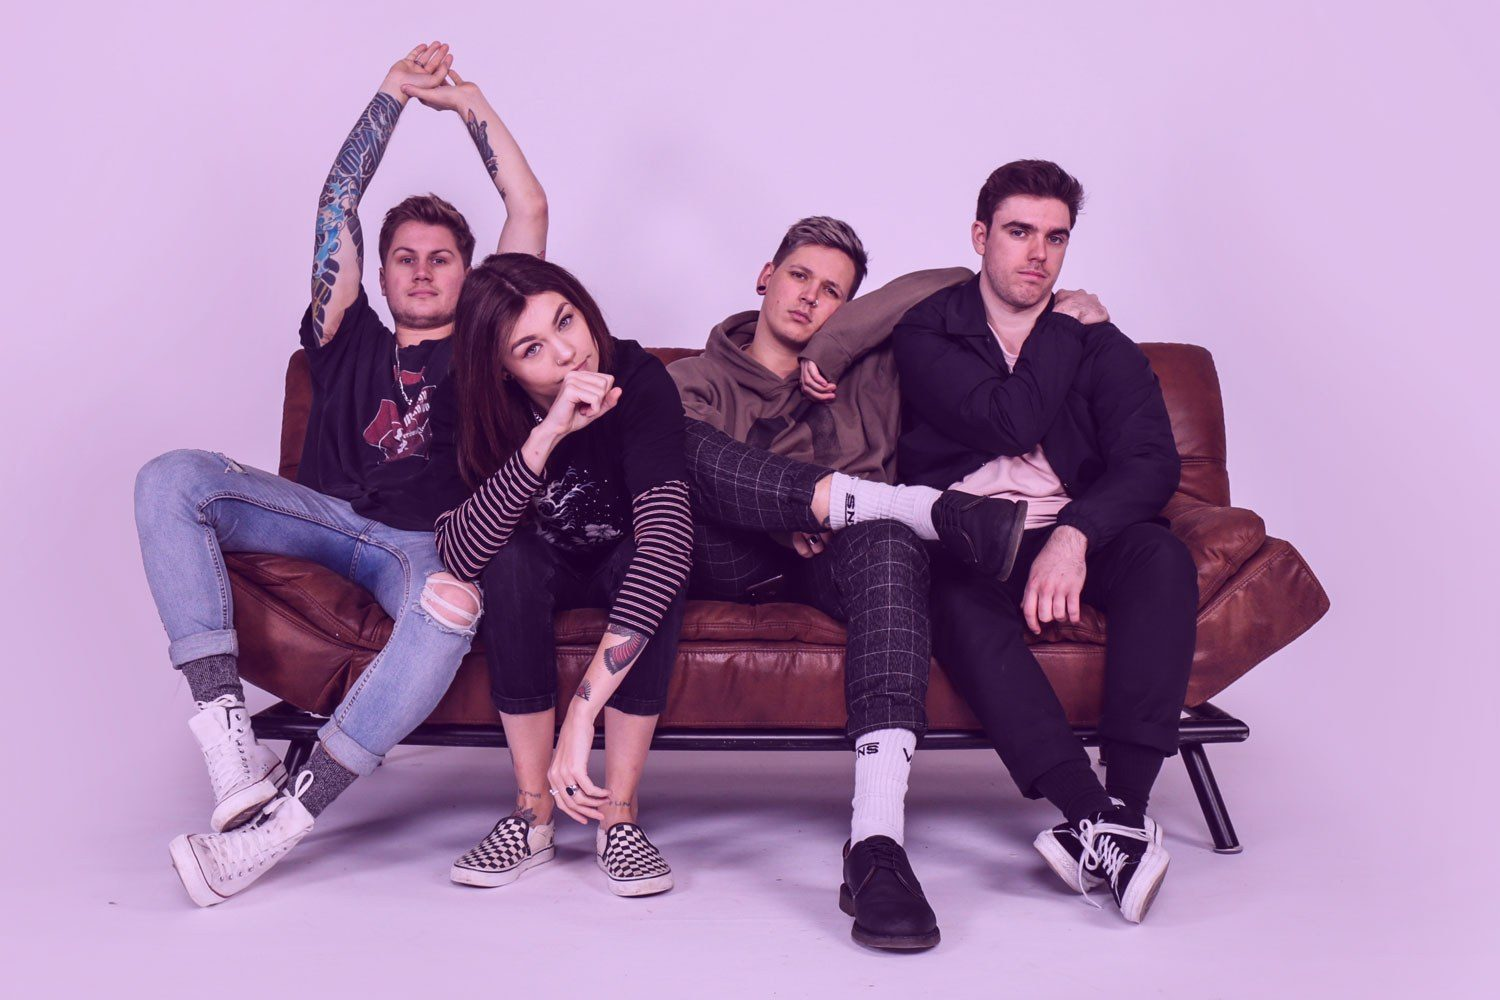 Up-and-comers Hot Milk have unveiled their debut EP, 'Are You Feeling Alive?'